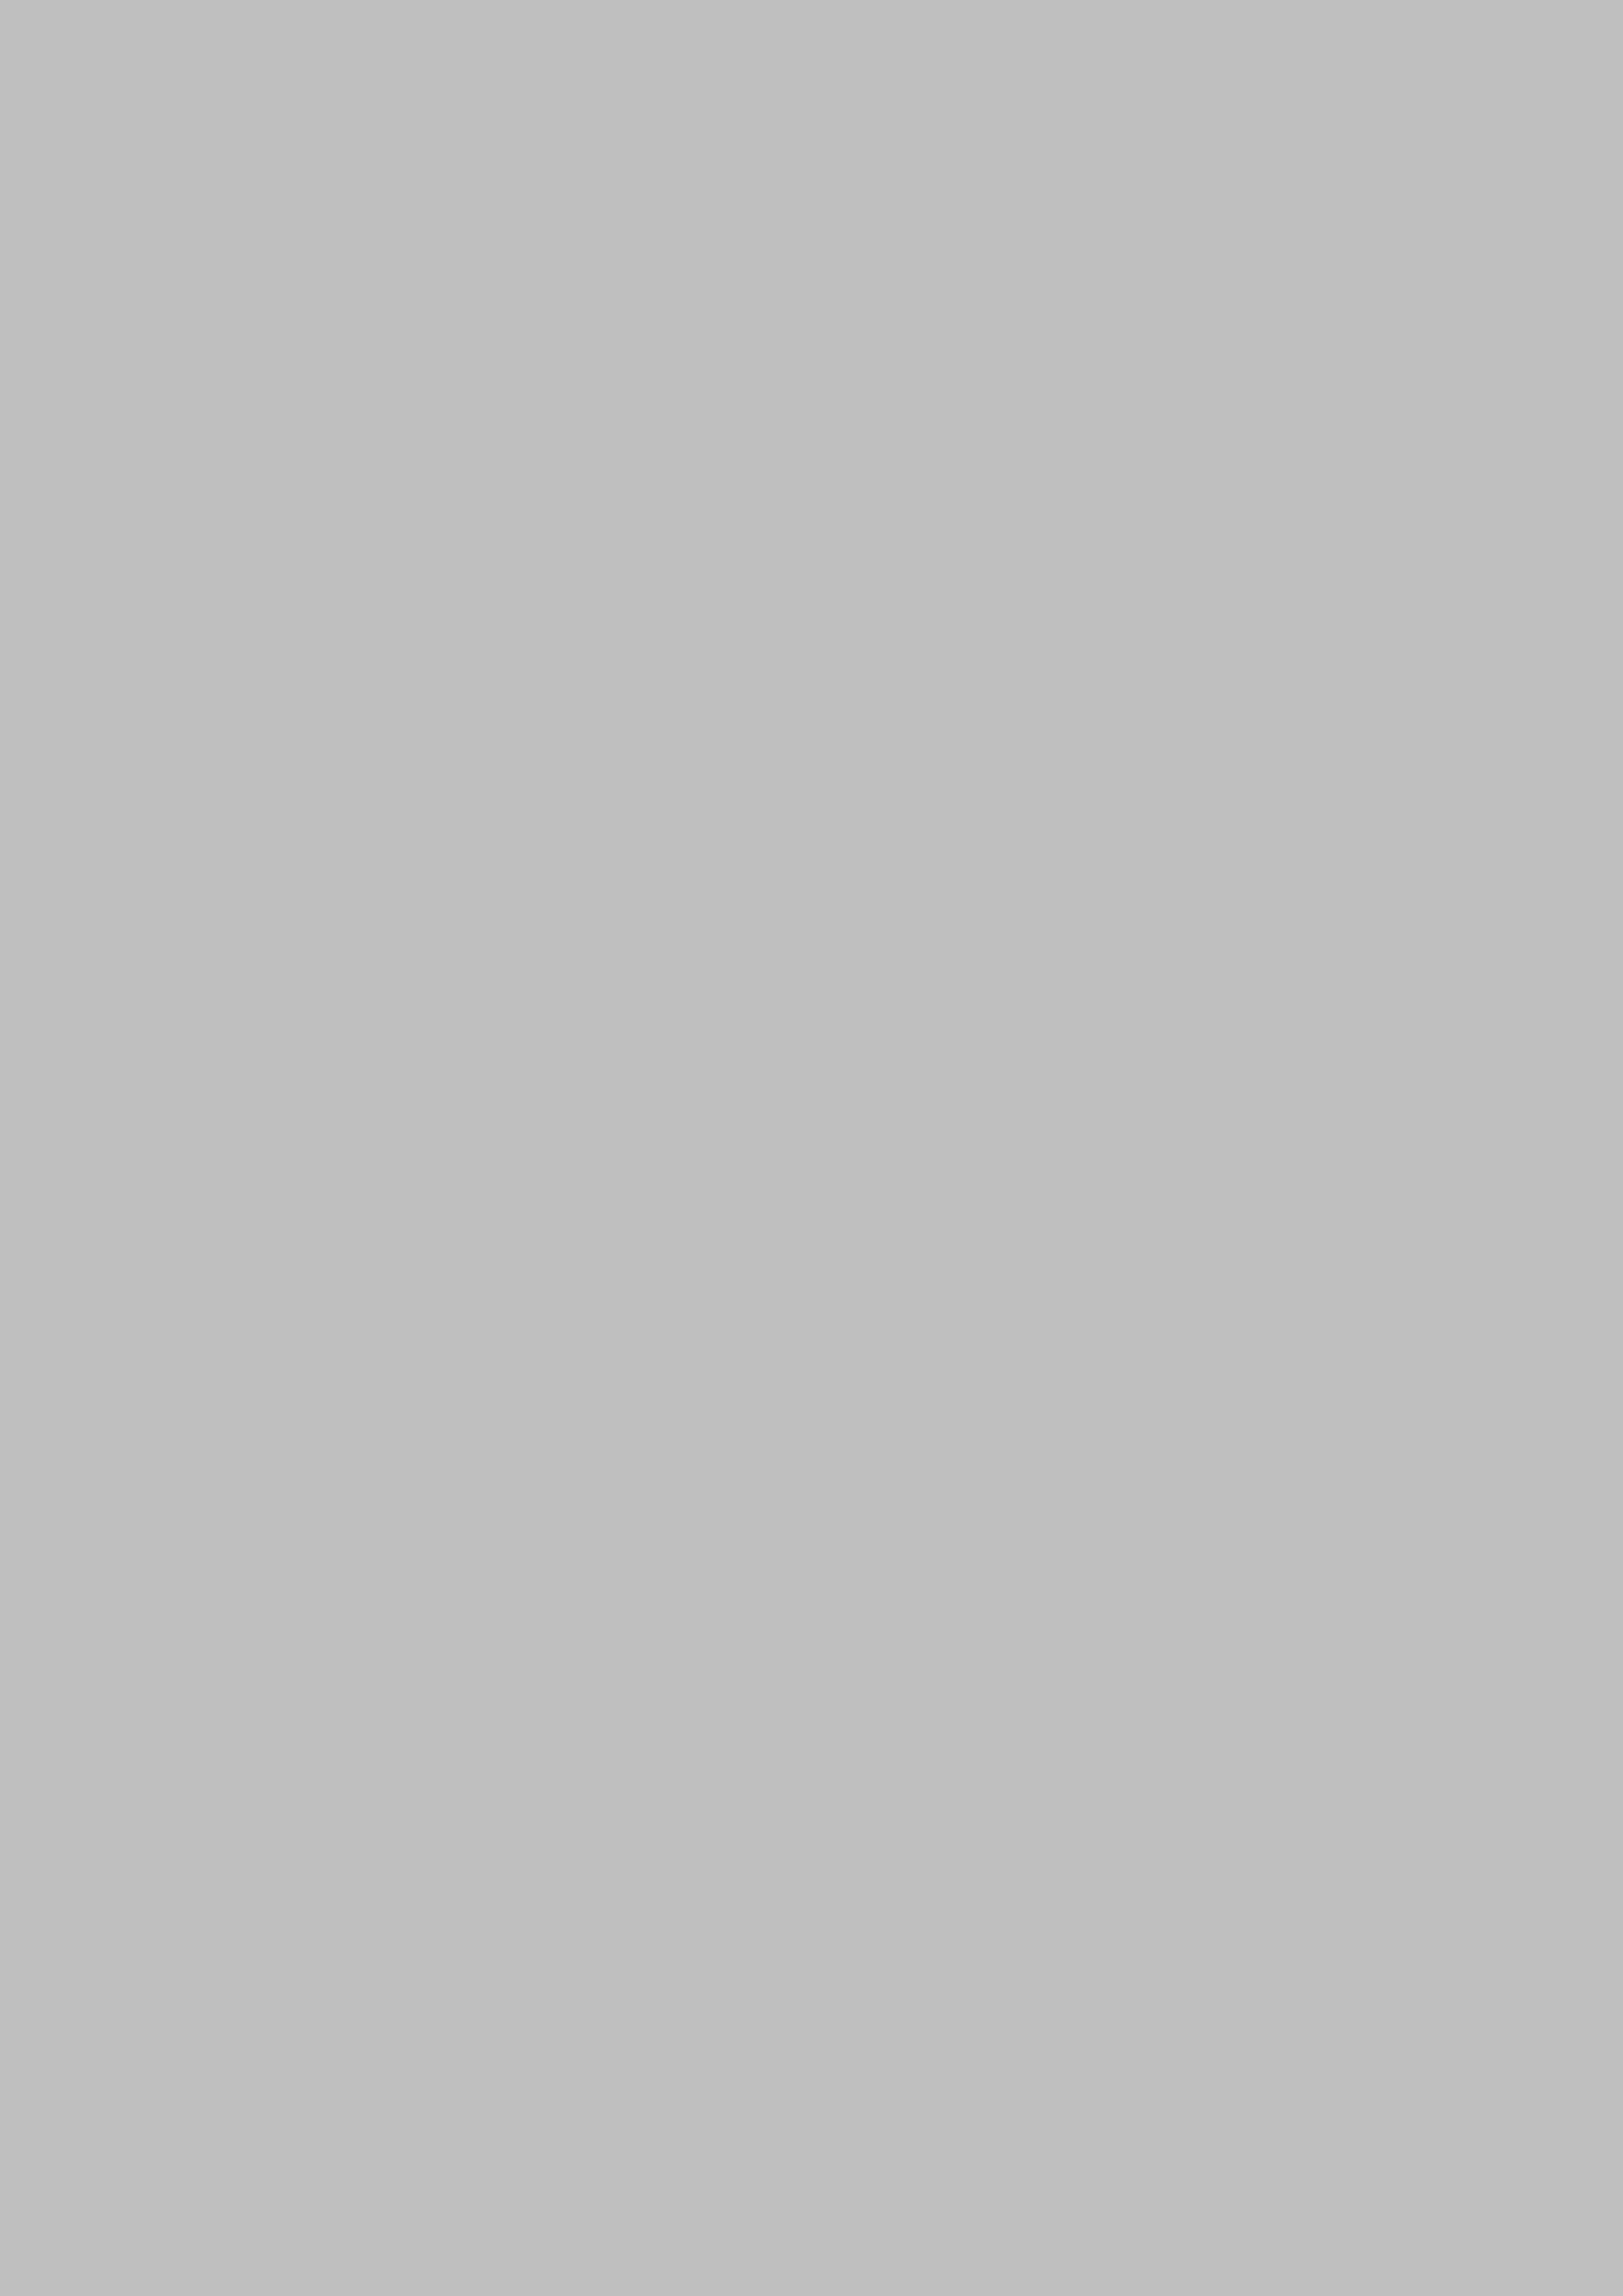 2480x3508 Gray X11 Gui Gray Solid Color Background